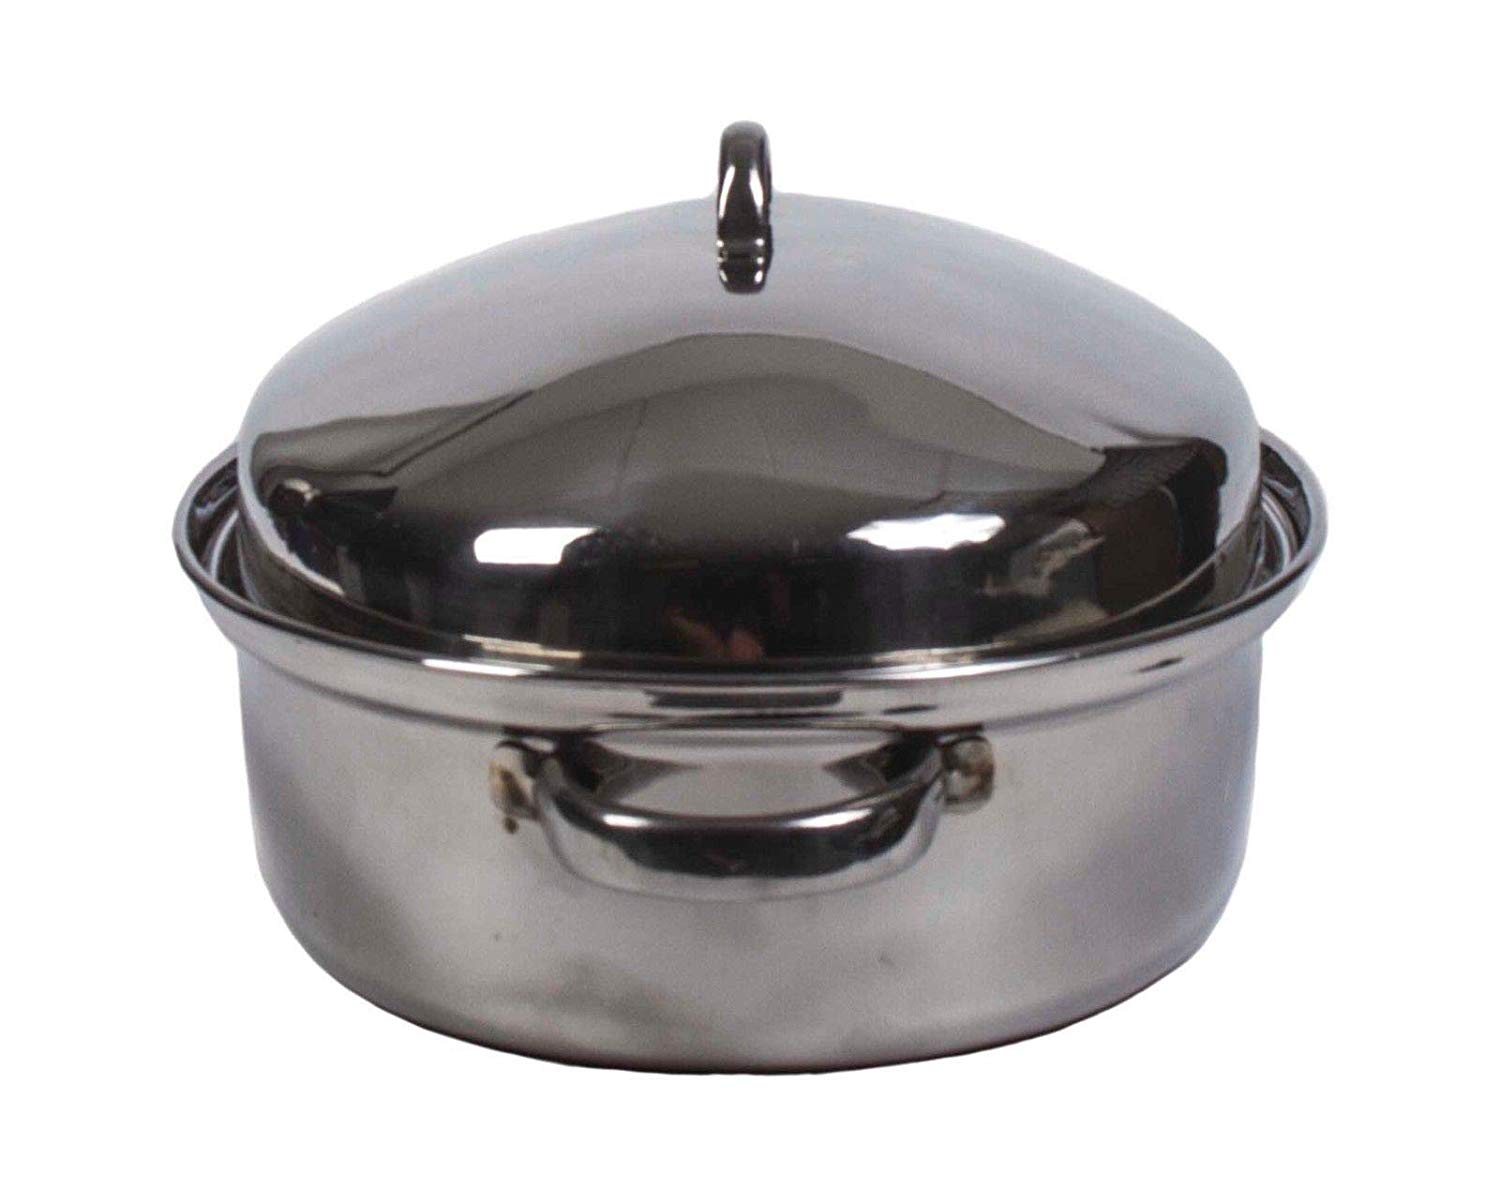 Oval Roaster Pan with Lid – Oven Roaster Pans – Roasting Pan with Lid – Stainless Steel Roasting Pan